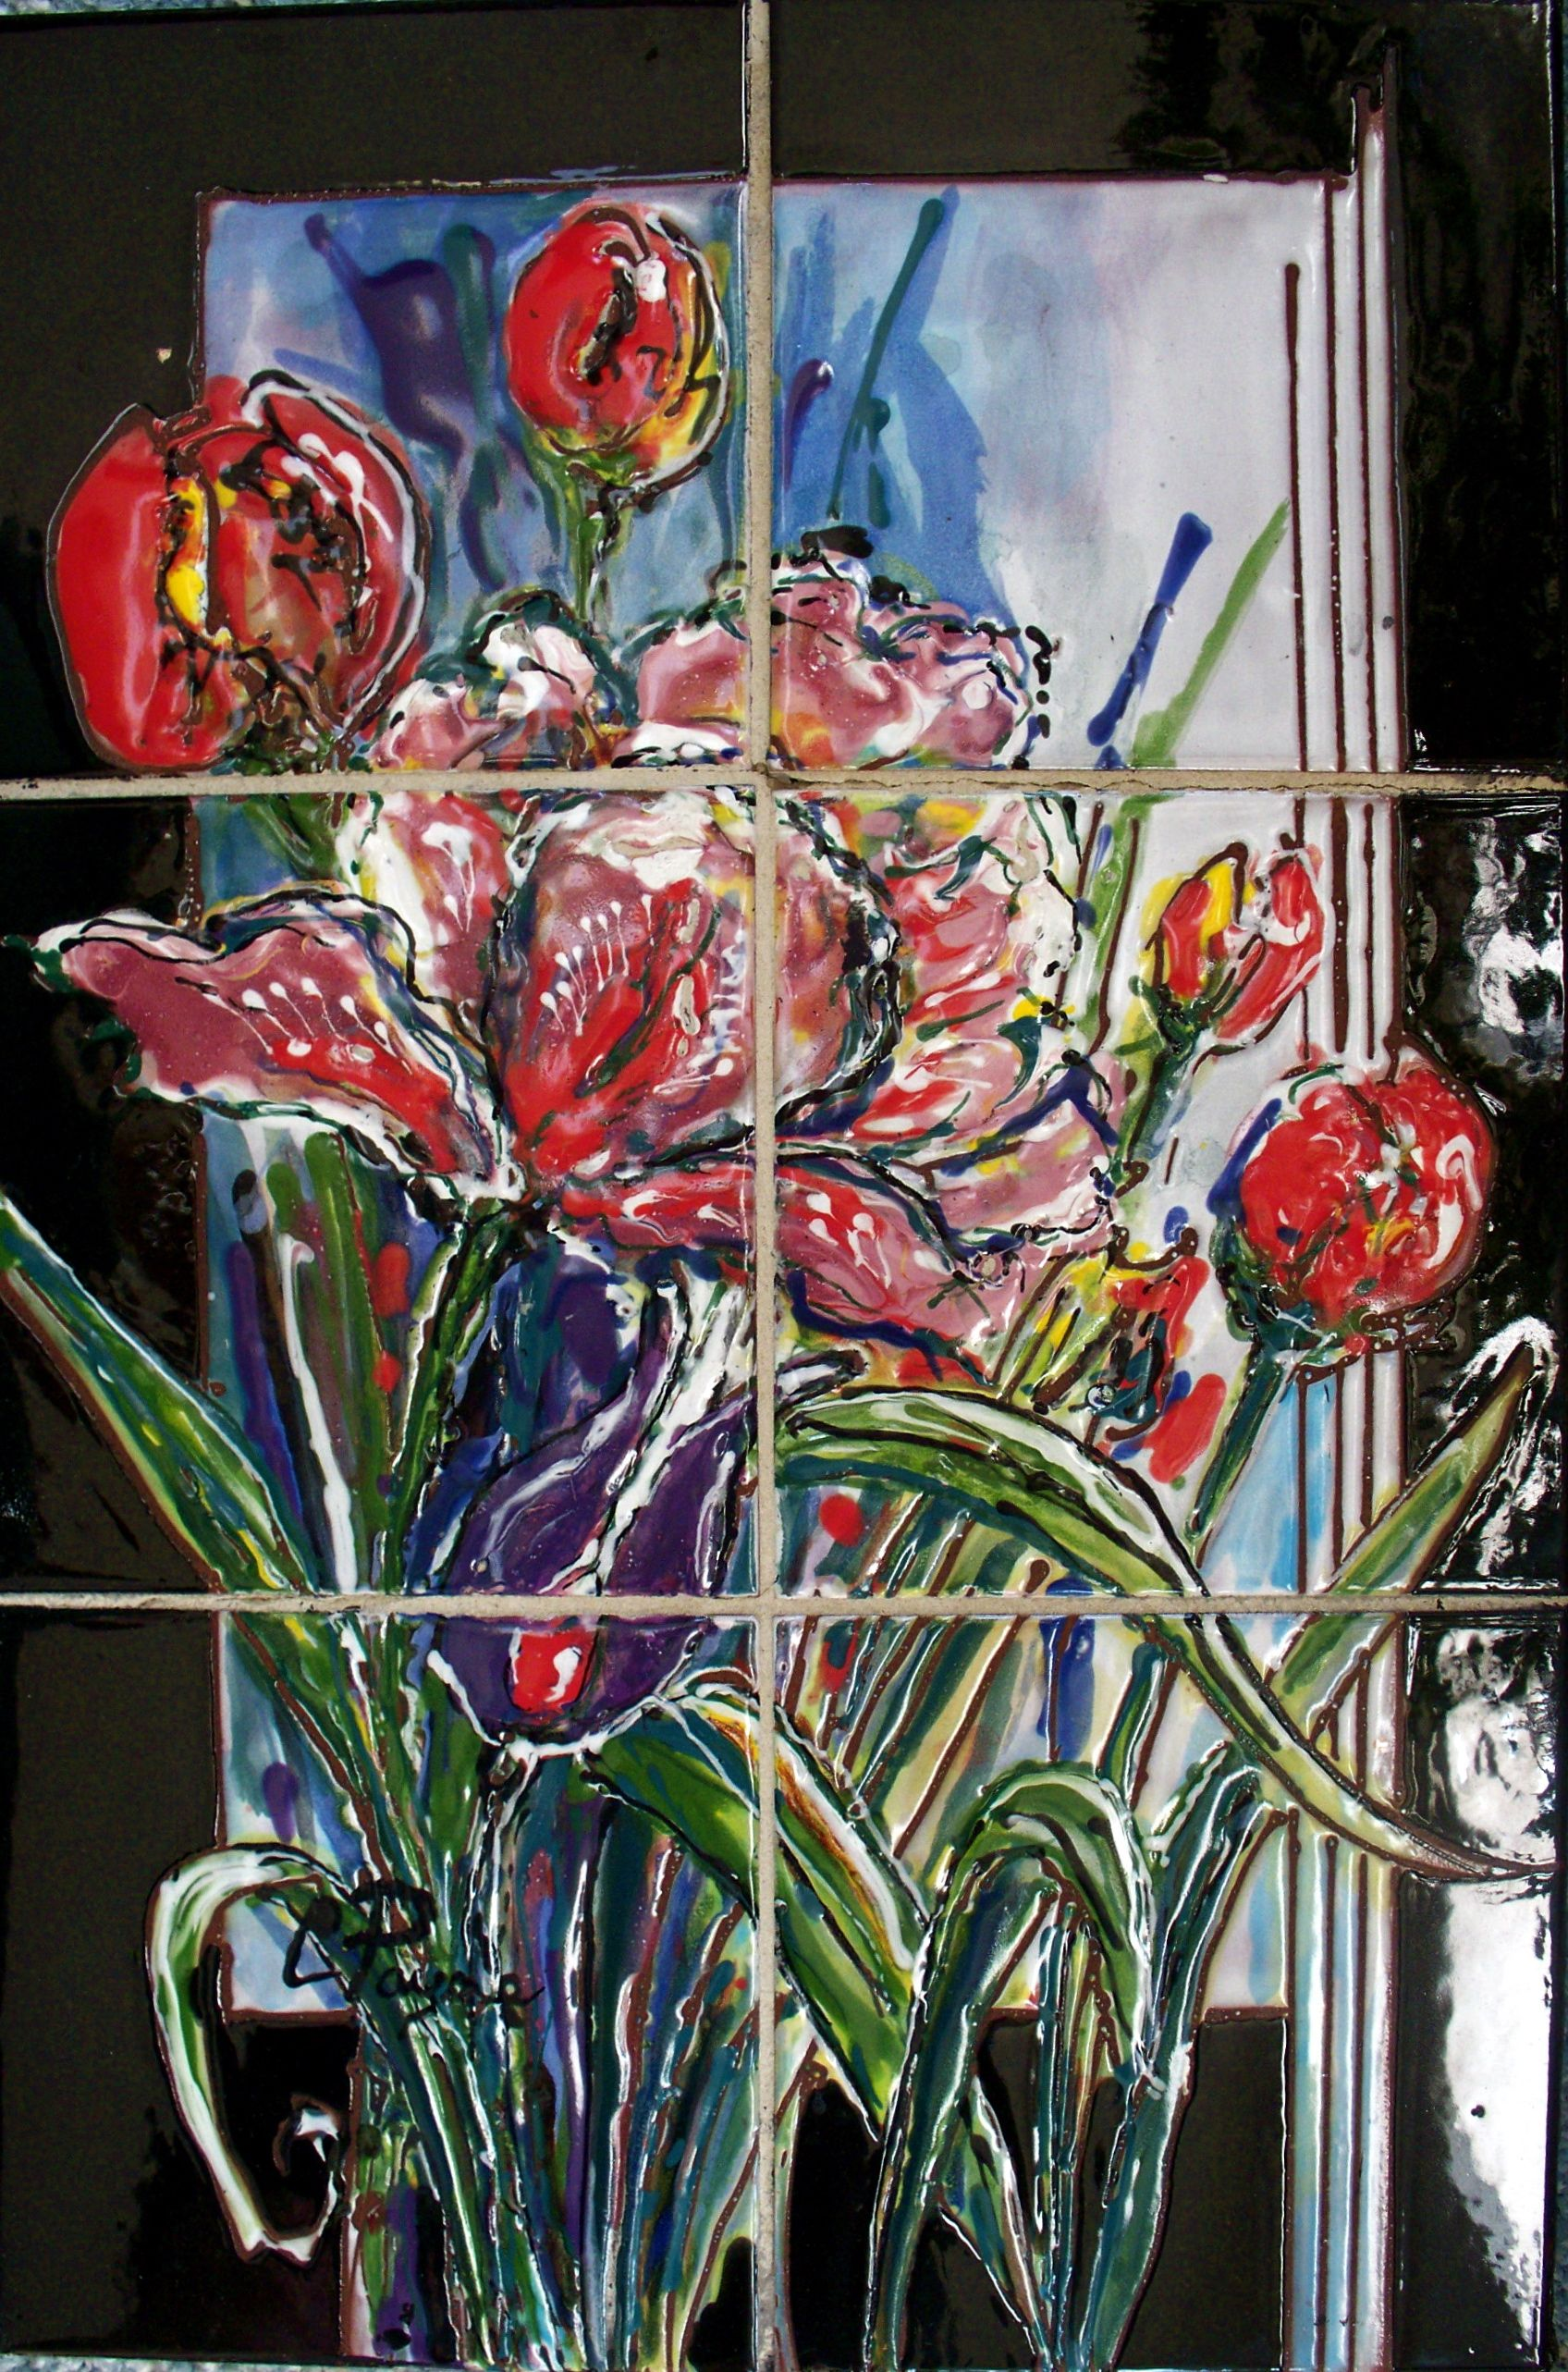 Carolyn payne murals hand painted tile mural tulips6 ceramic carolyn payne murals hand painted tile mural tulips6 ceramic tile doublecrazyfo Choice Image